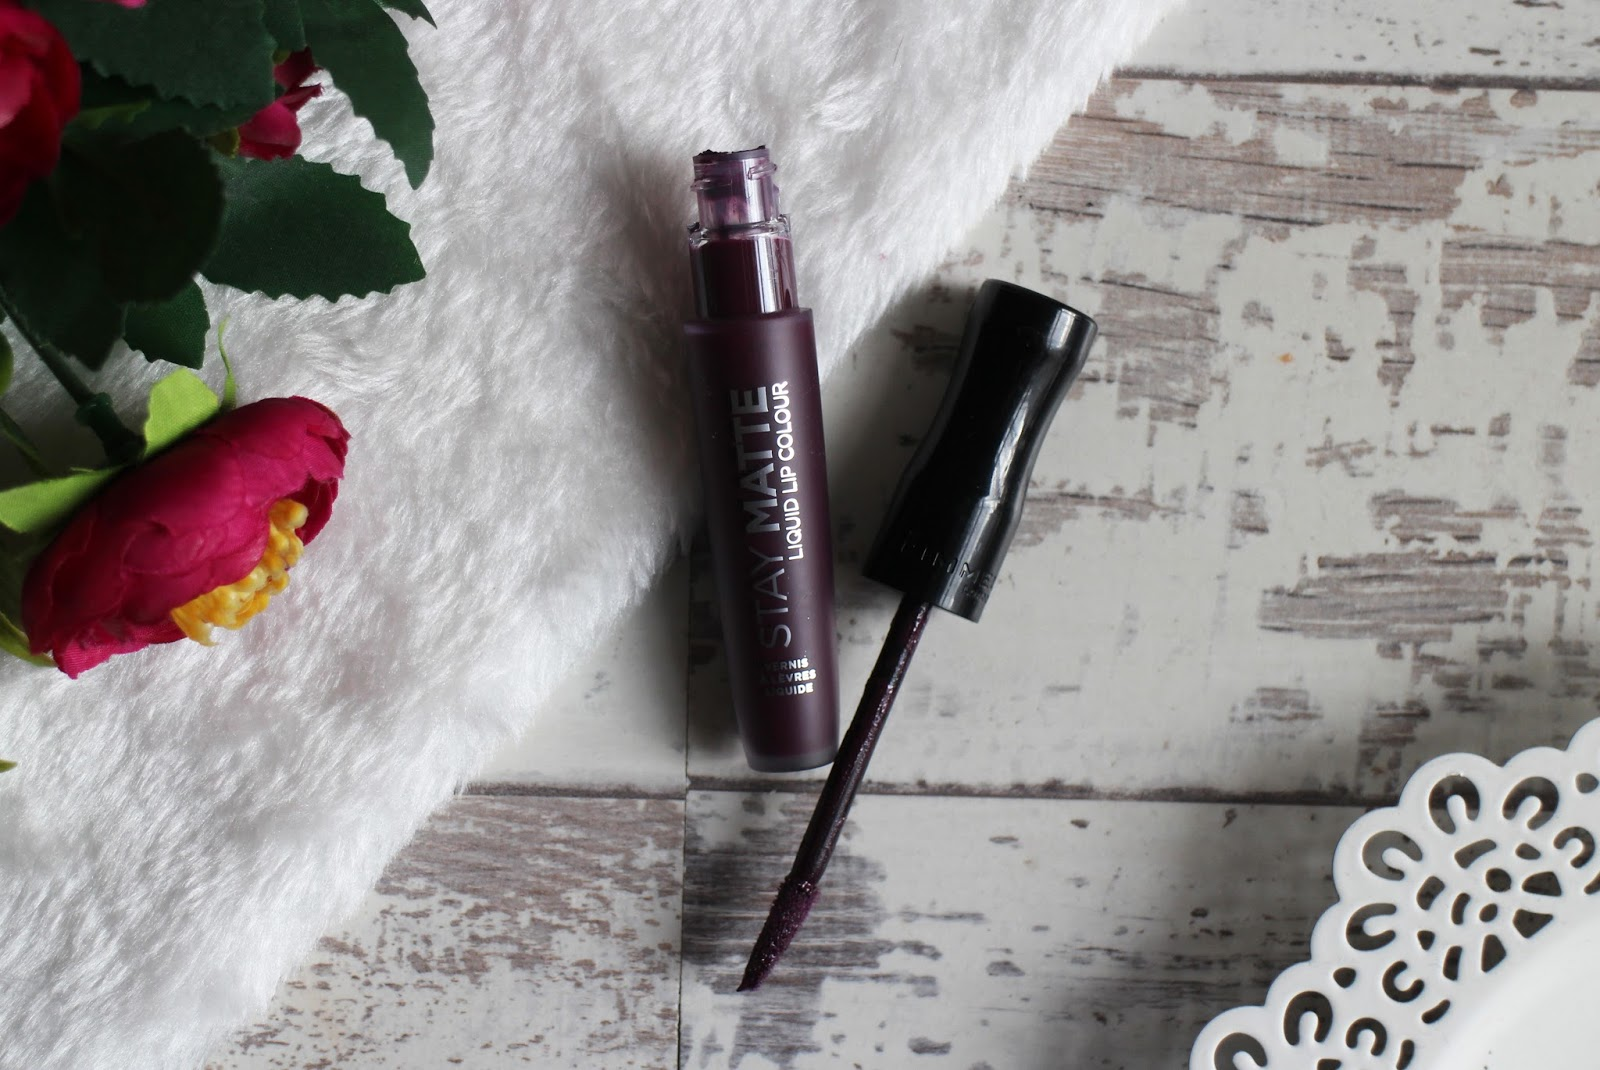 Rimmel Stay Matte Liquid Lip Colour in Midnight